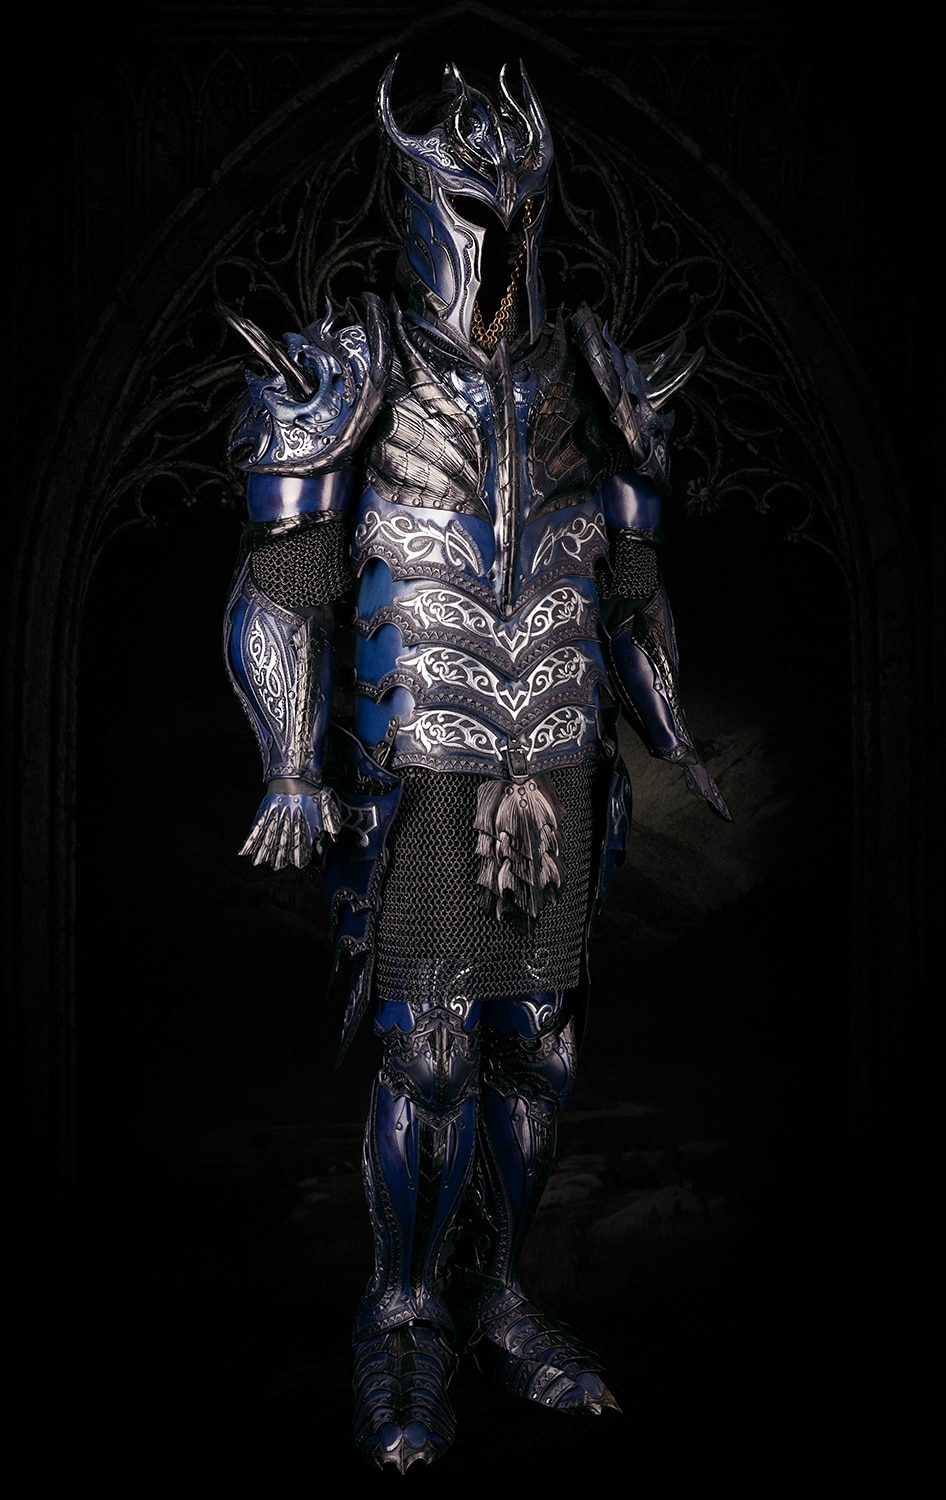 Gallery Blue Dragon Armor Prince Armory Add several armor sets and a dragon to the game. gallery blue dragon armor prince armory